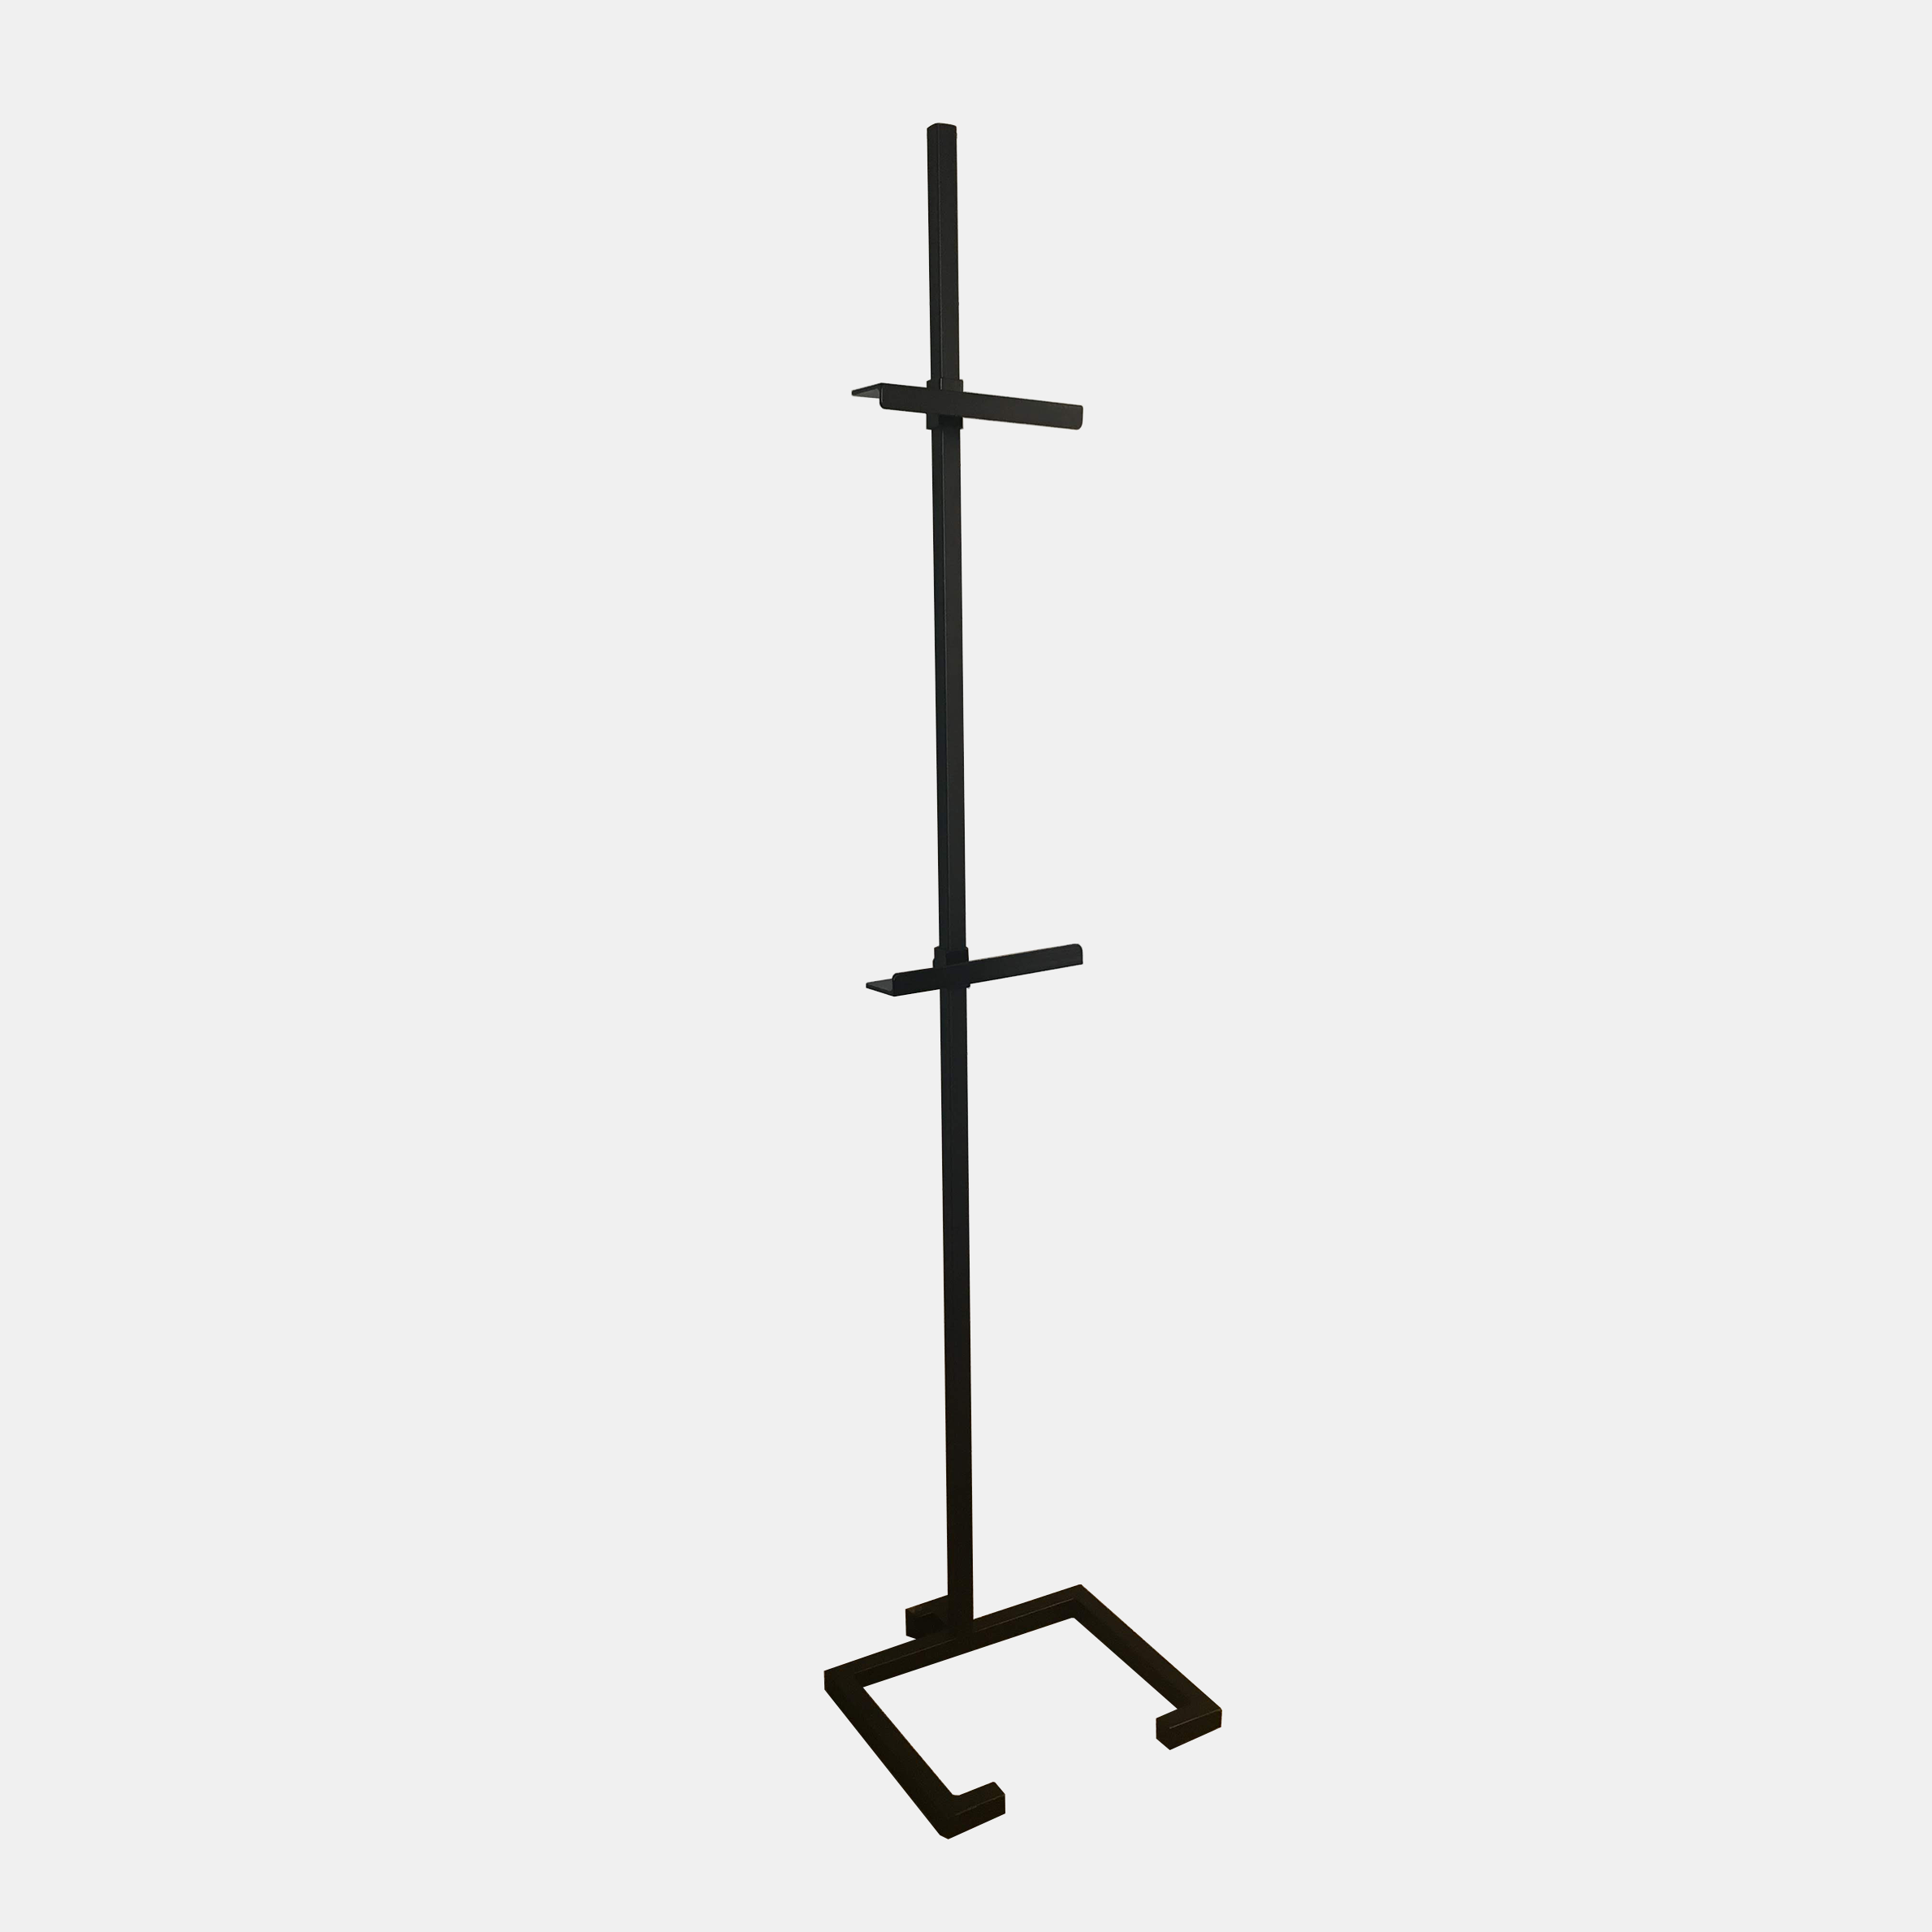 "Medium Steel Easel  Black powder-coated steel base with hollow-core post and adjustable brackets. Custom made in Atlanta, GA. Medium: 72"" high, 15""x14.5"" base. All brackets 2.5"" deep. Additional brackets available for use with two pieces of art. SKU112FMW"